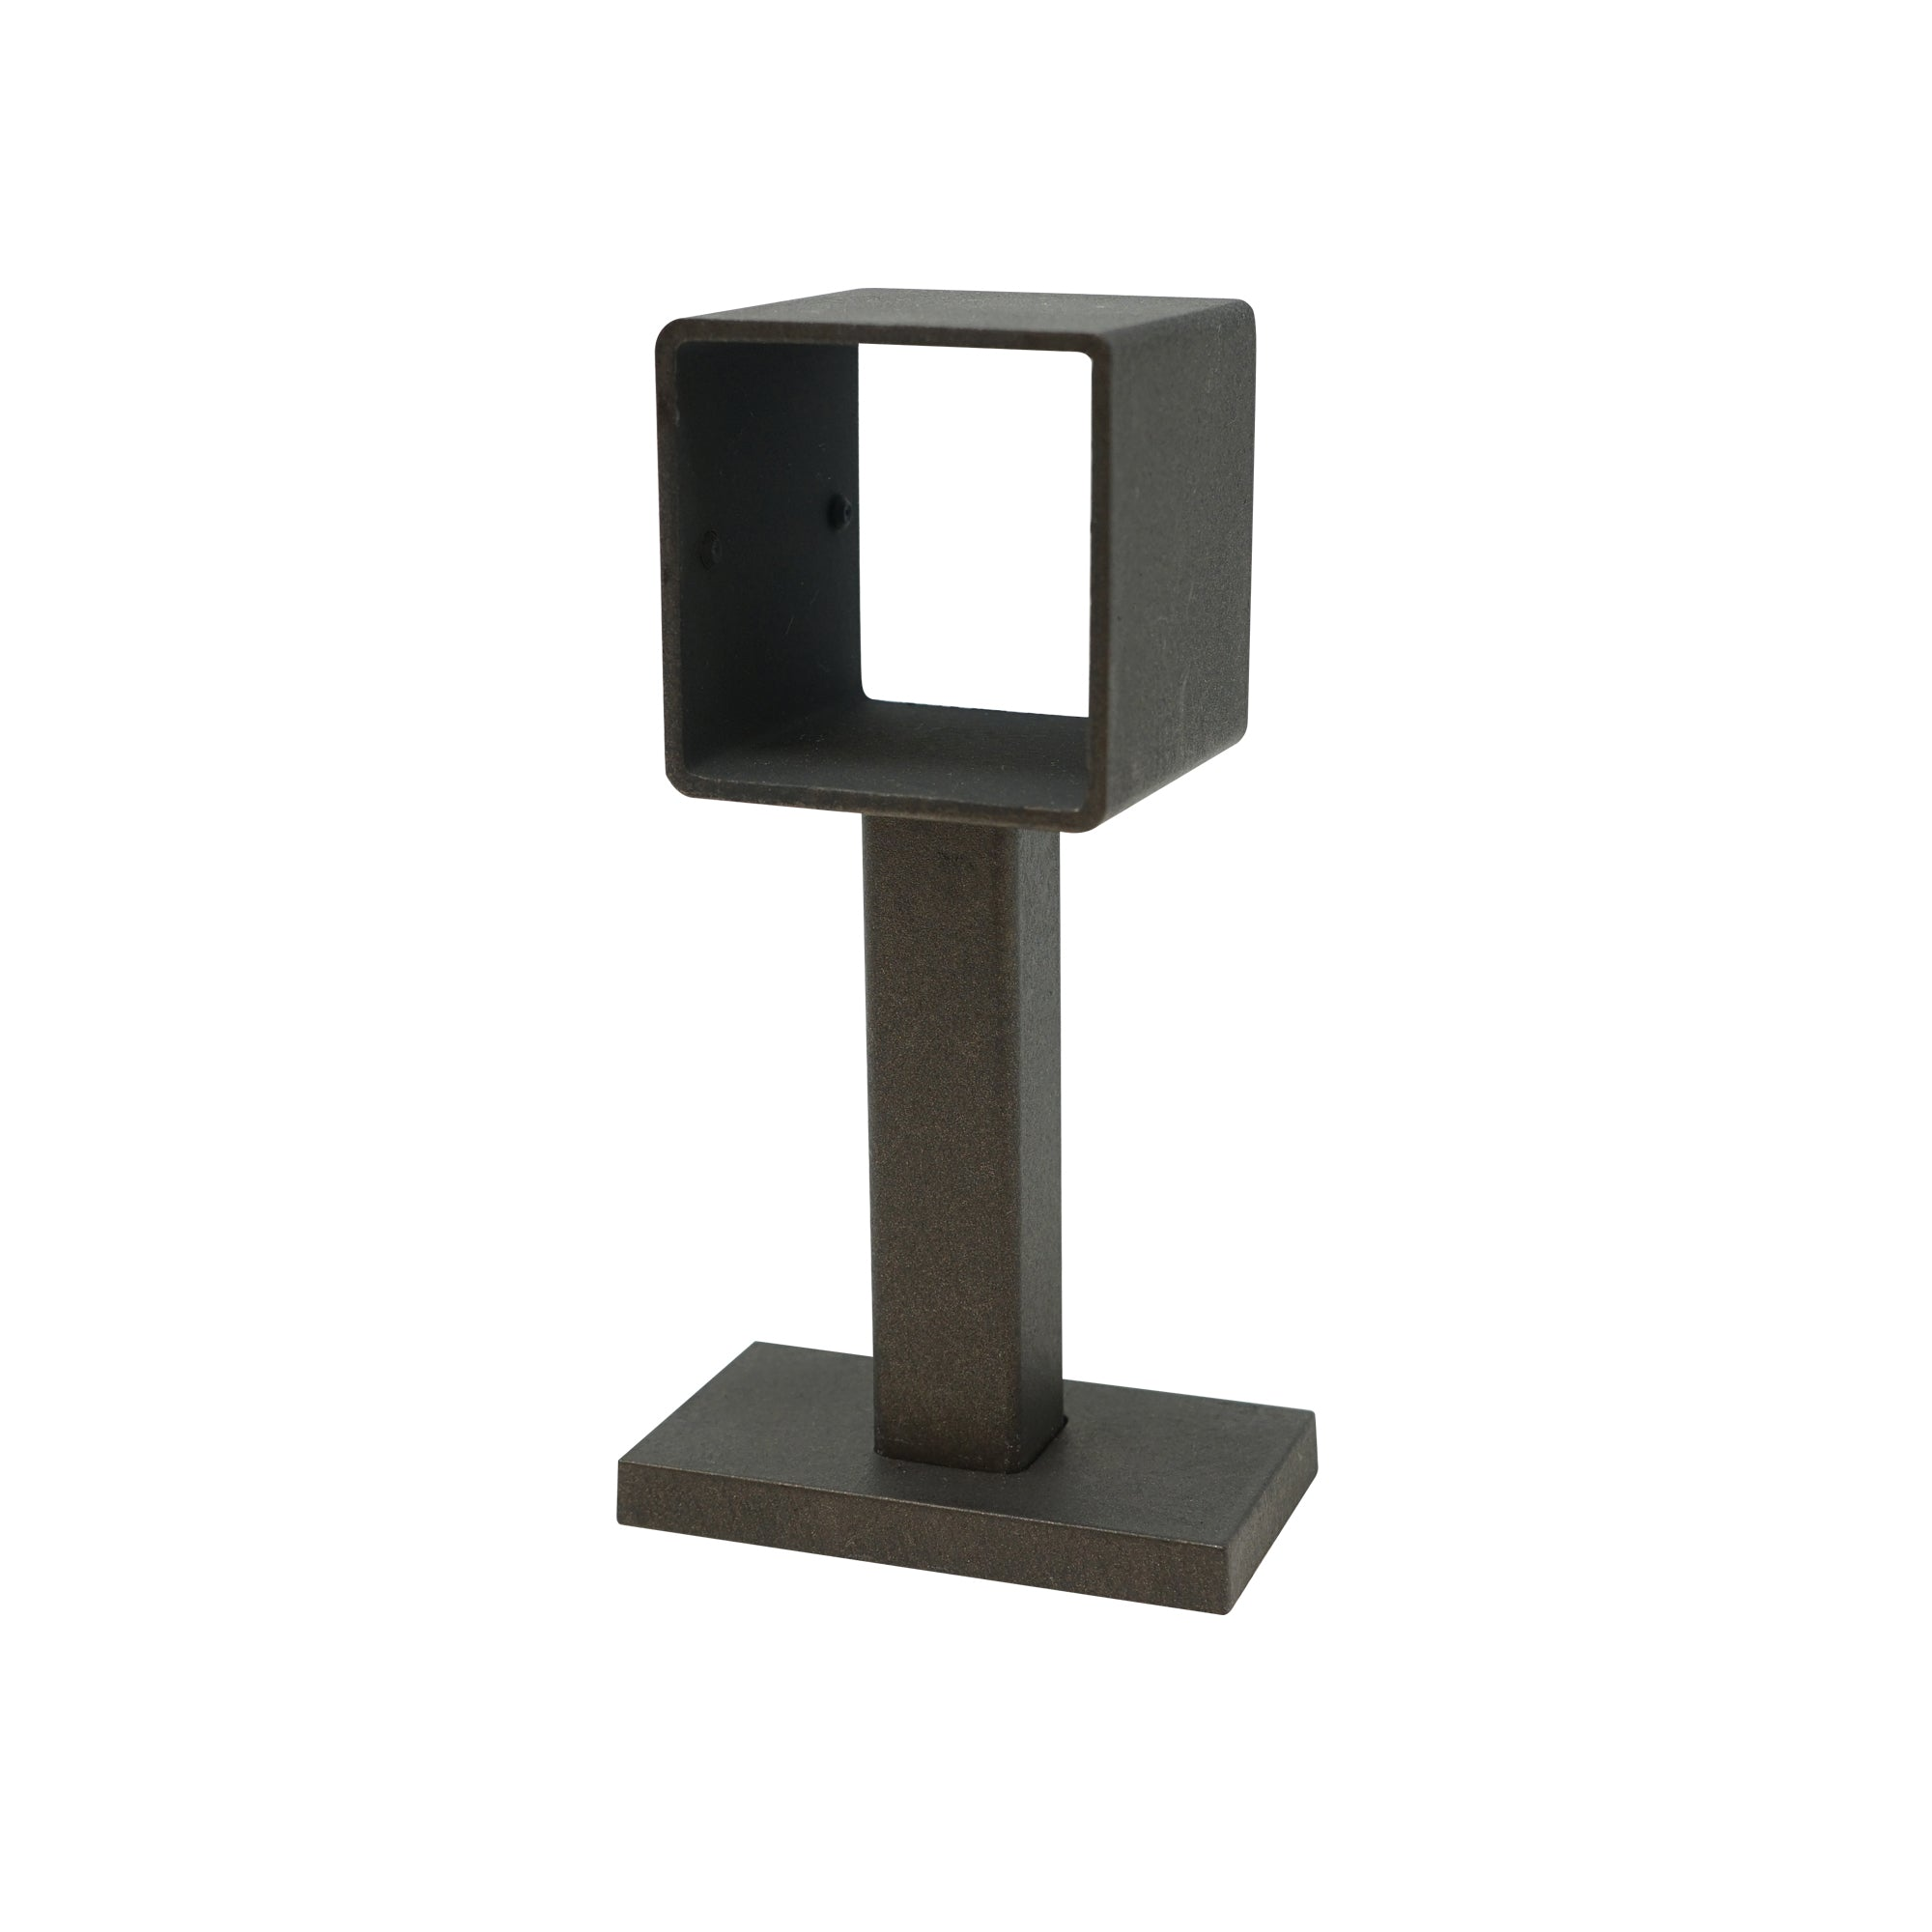 Square Metal Bracket - Iron Finish